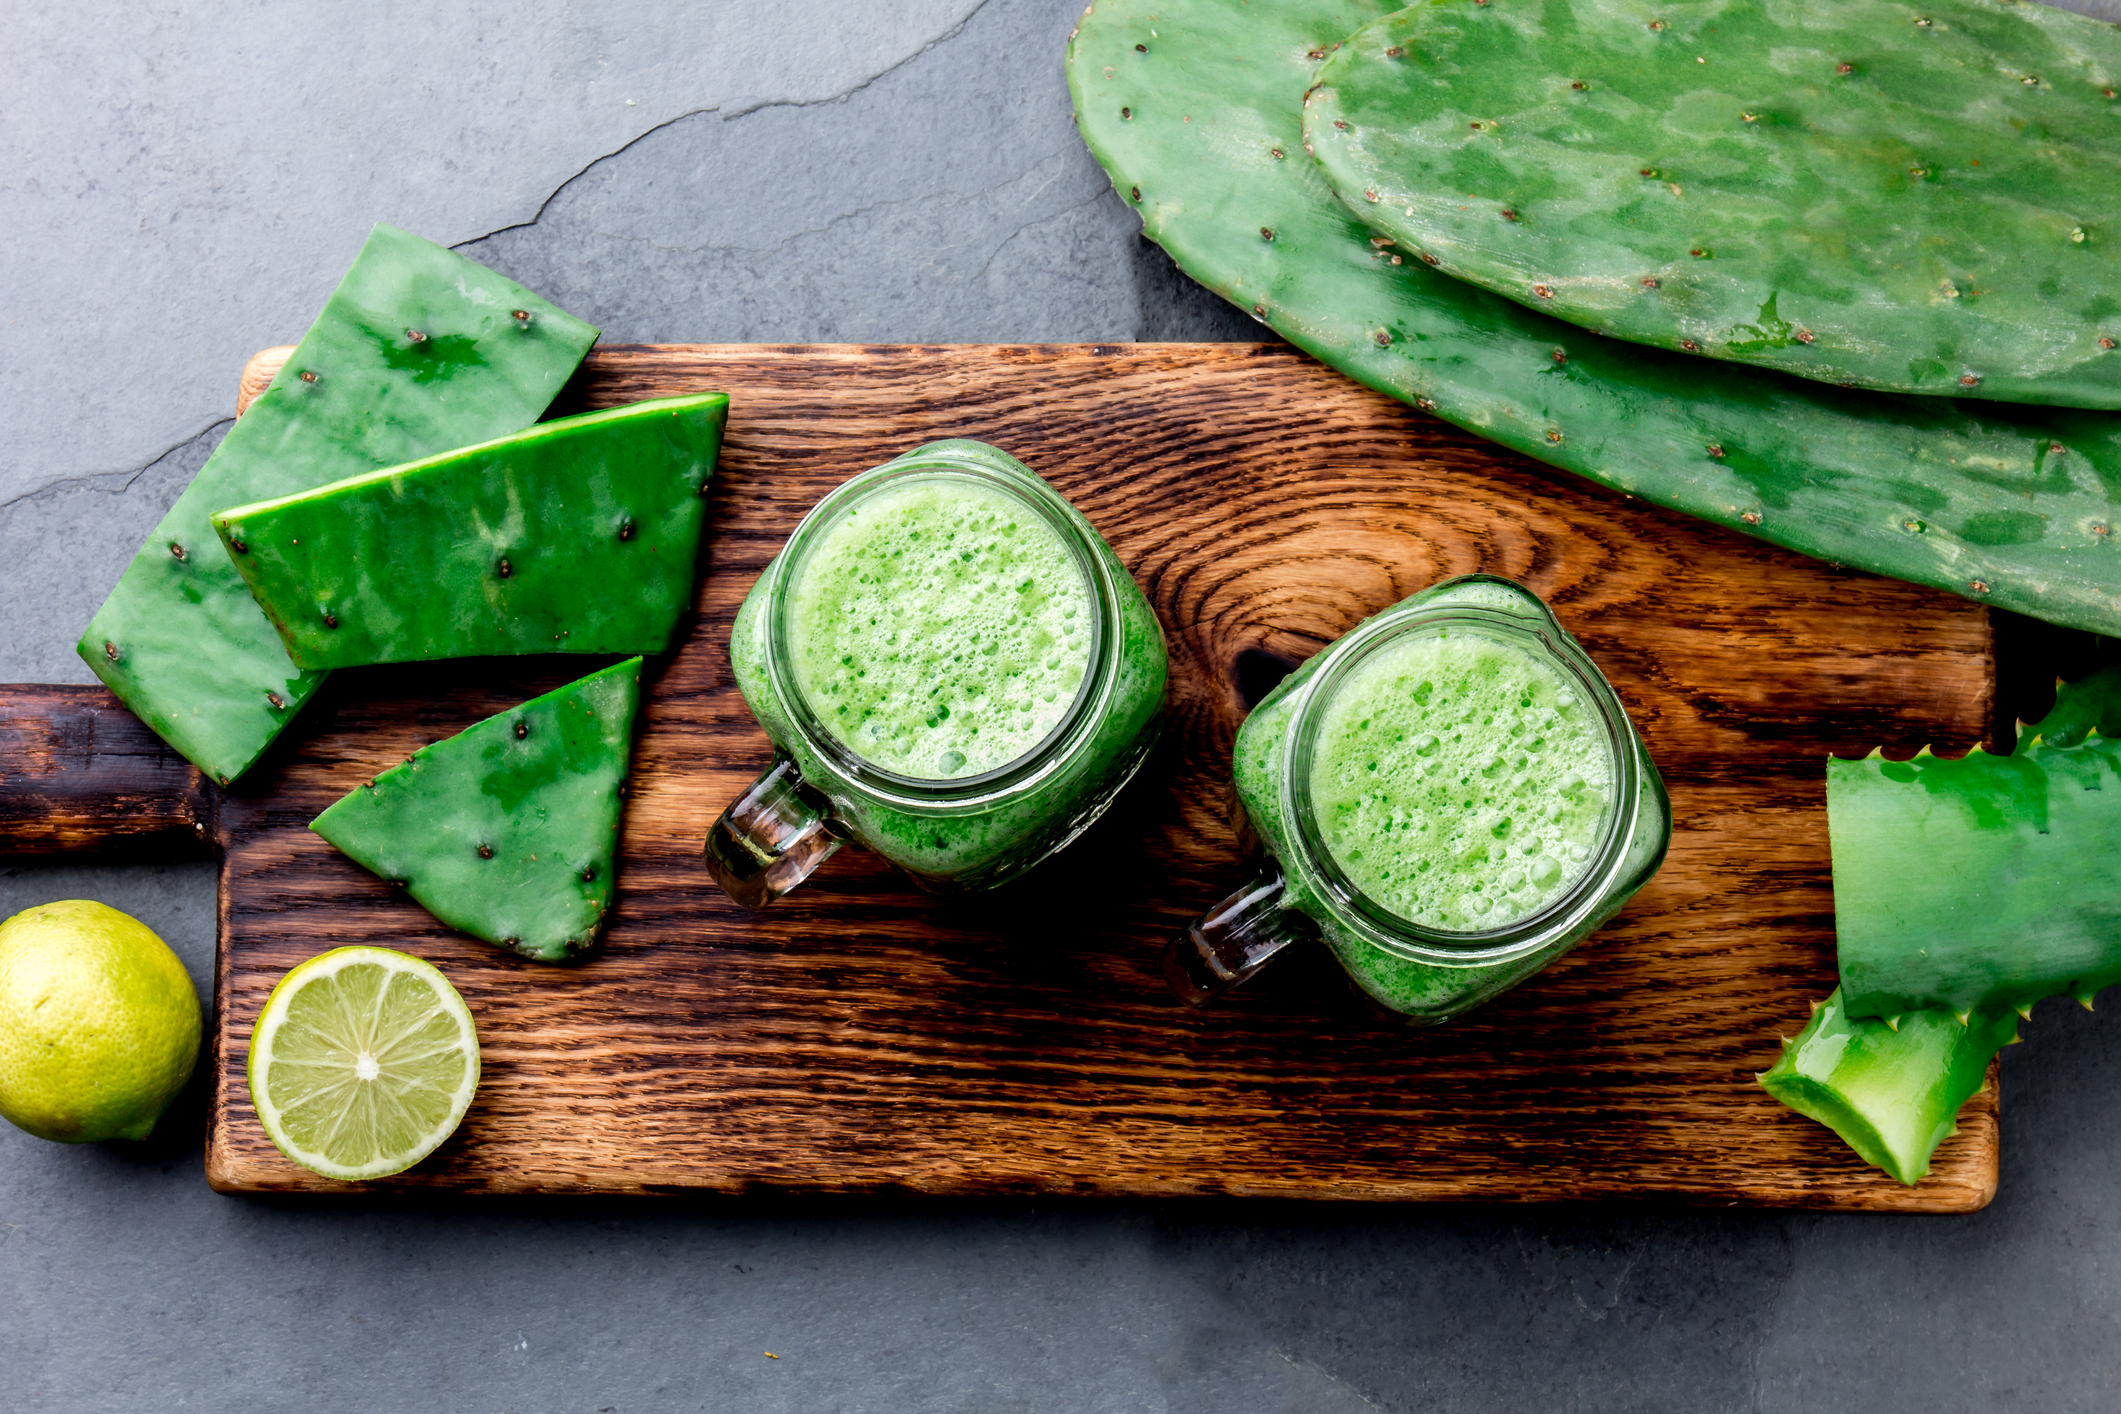 Cactus Juice - Women from Mexico are using the cactus' juice to heal their skin from sunburns, re-hydrate the dermal layer, and detoxify the pores.